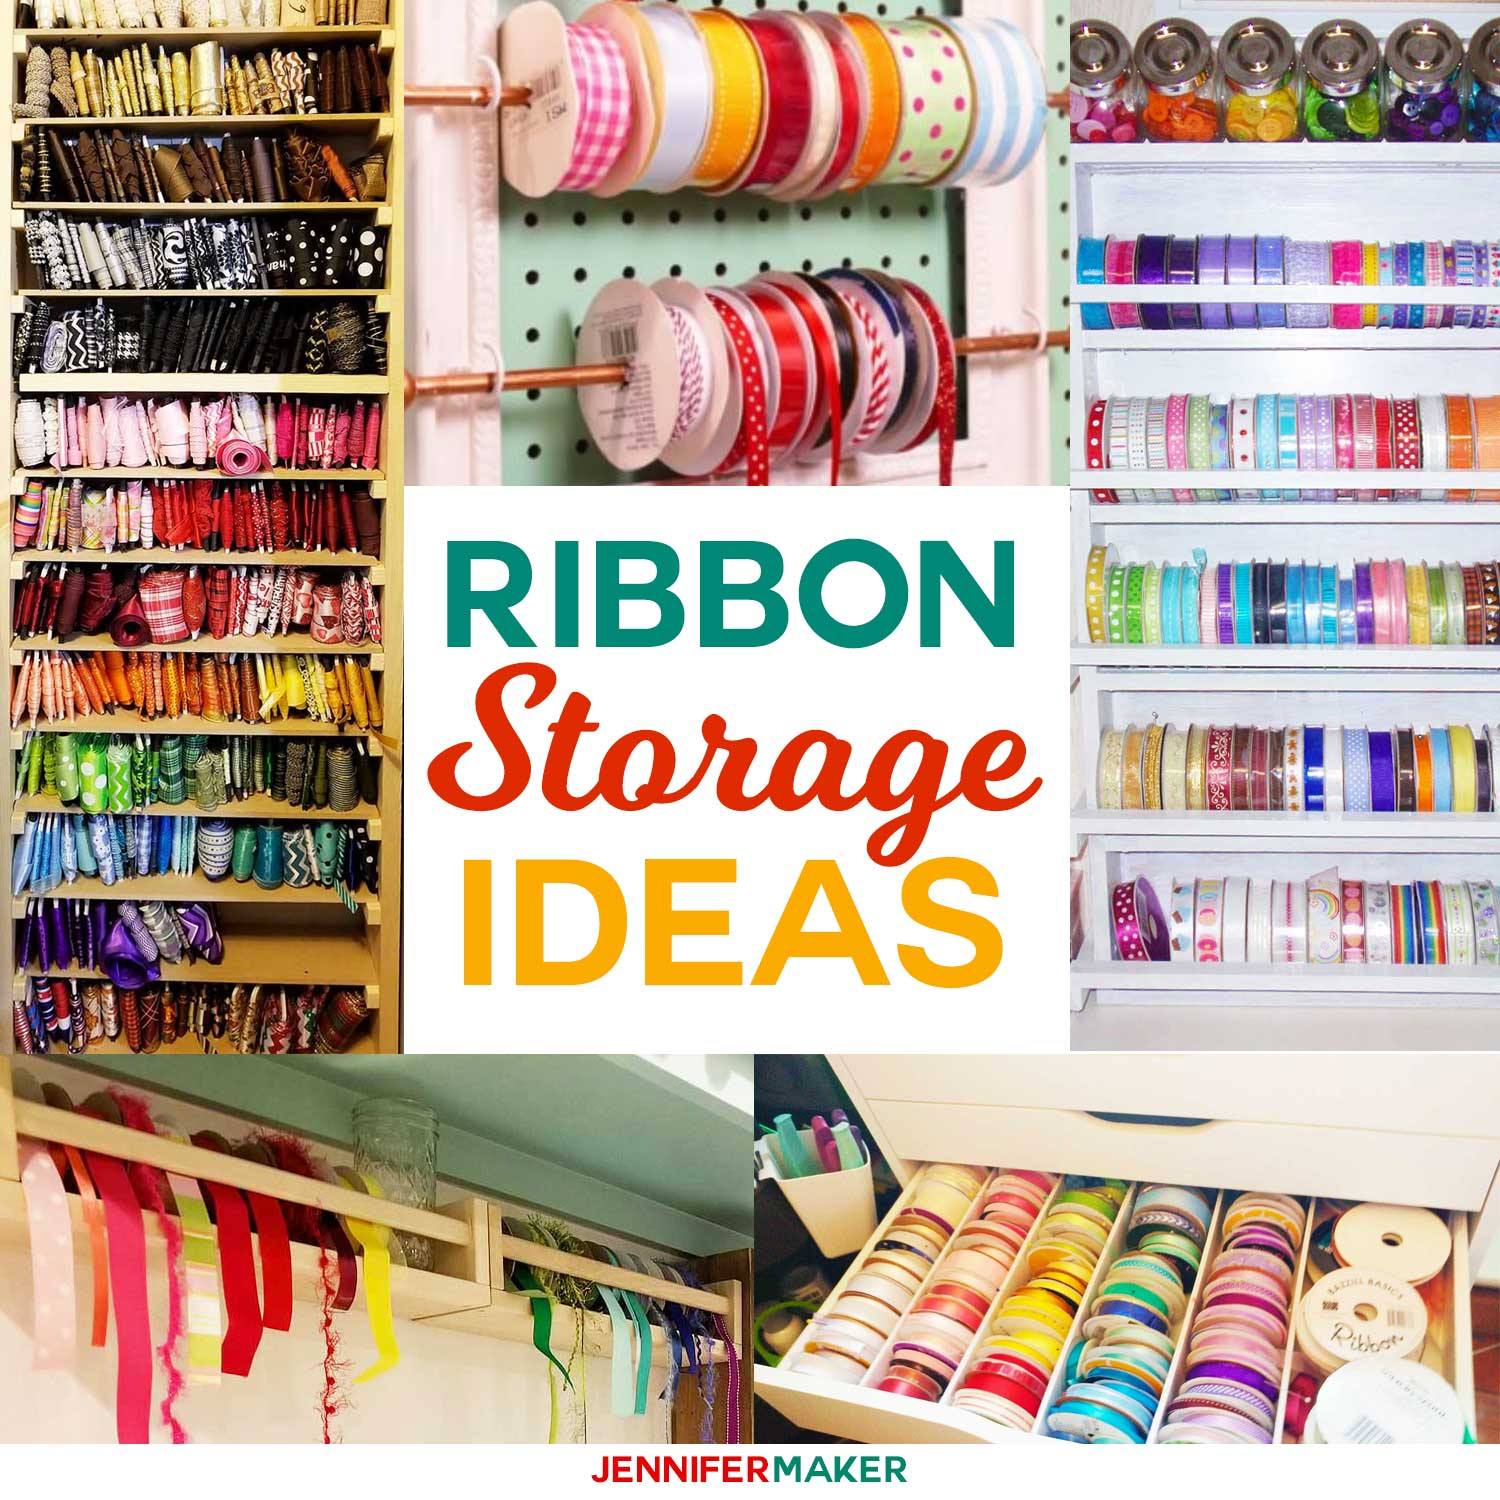 DIY Ribbon Storage Ideas To Keep Your Craft Ribbon Spools Organized And  Accessible #craftroom #